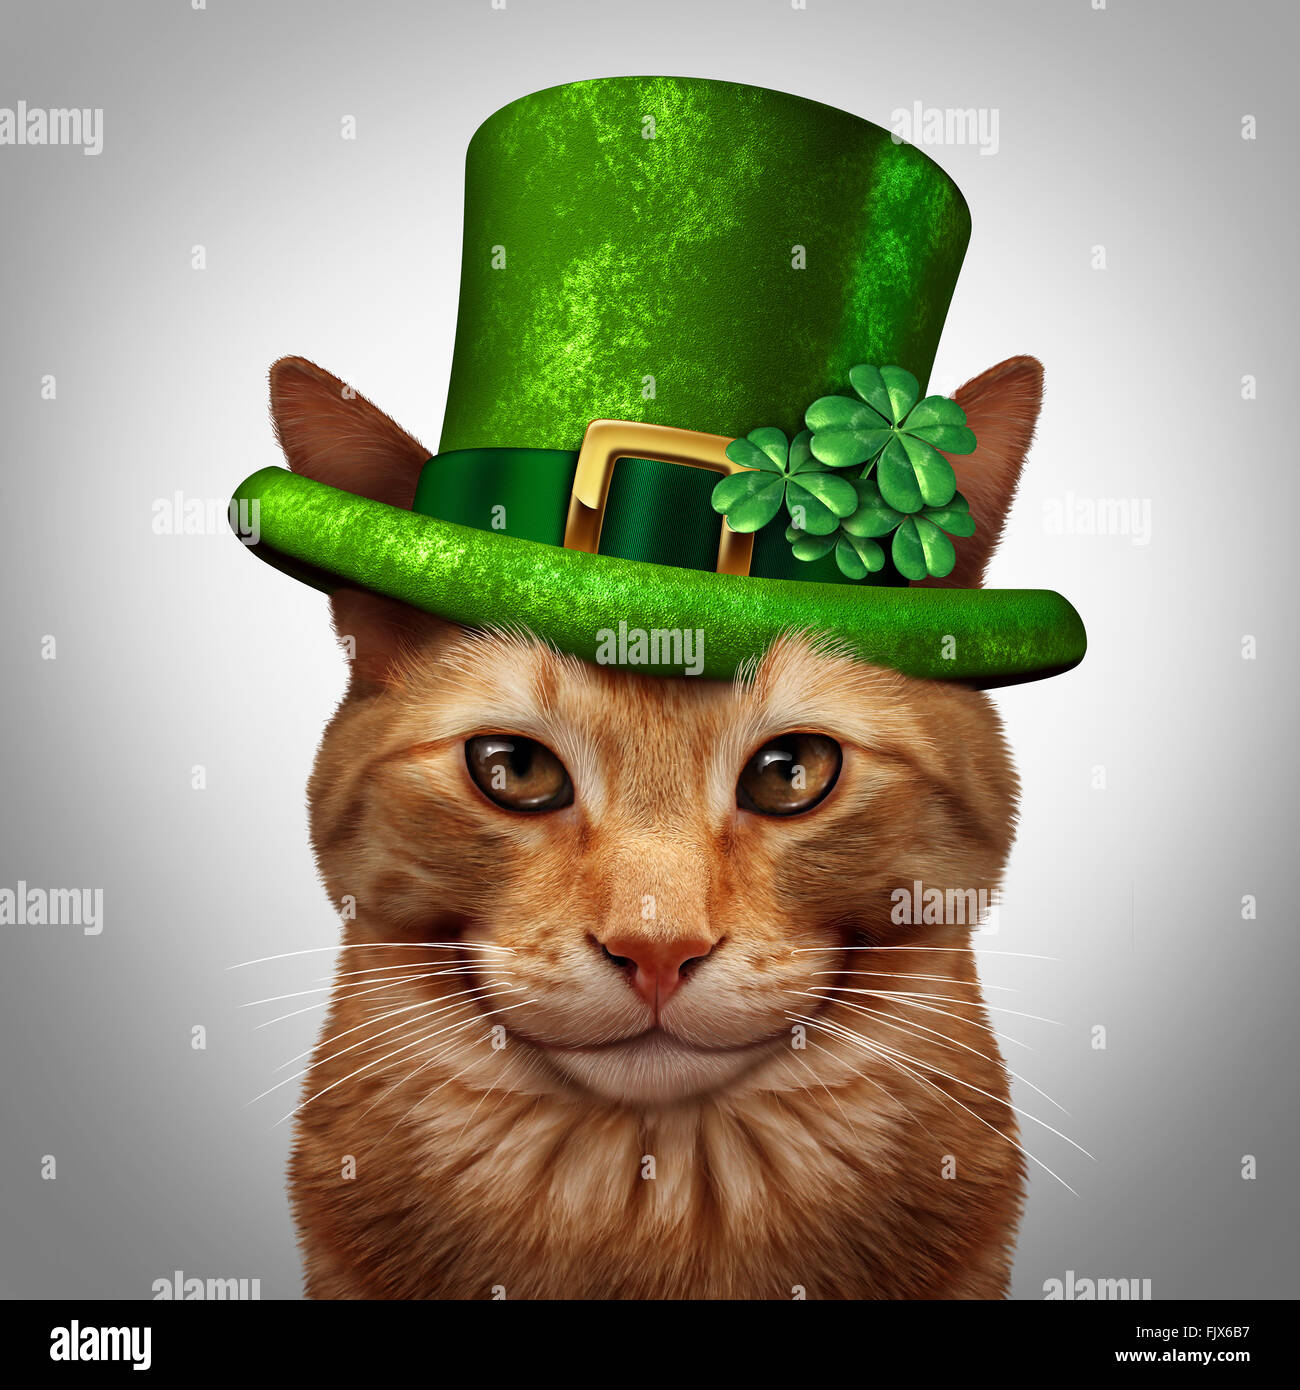 Saint Patricks day cat concept comme un amusement happy smiling animal félin portant un chapeau vert leprechuan Photo Stock